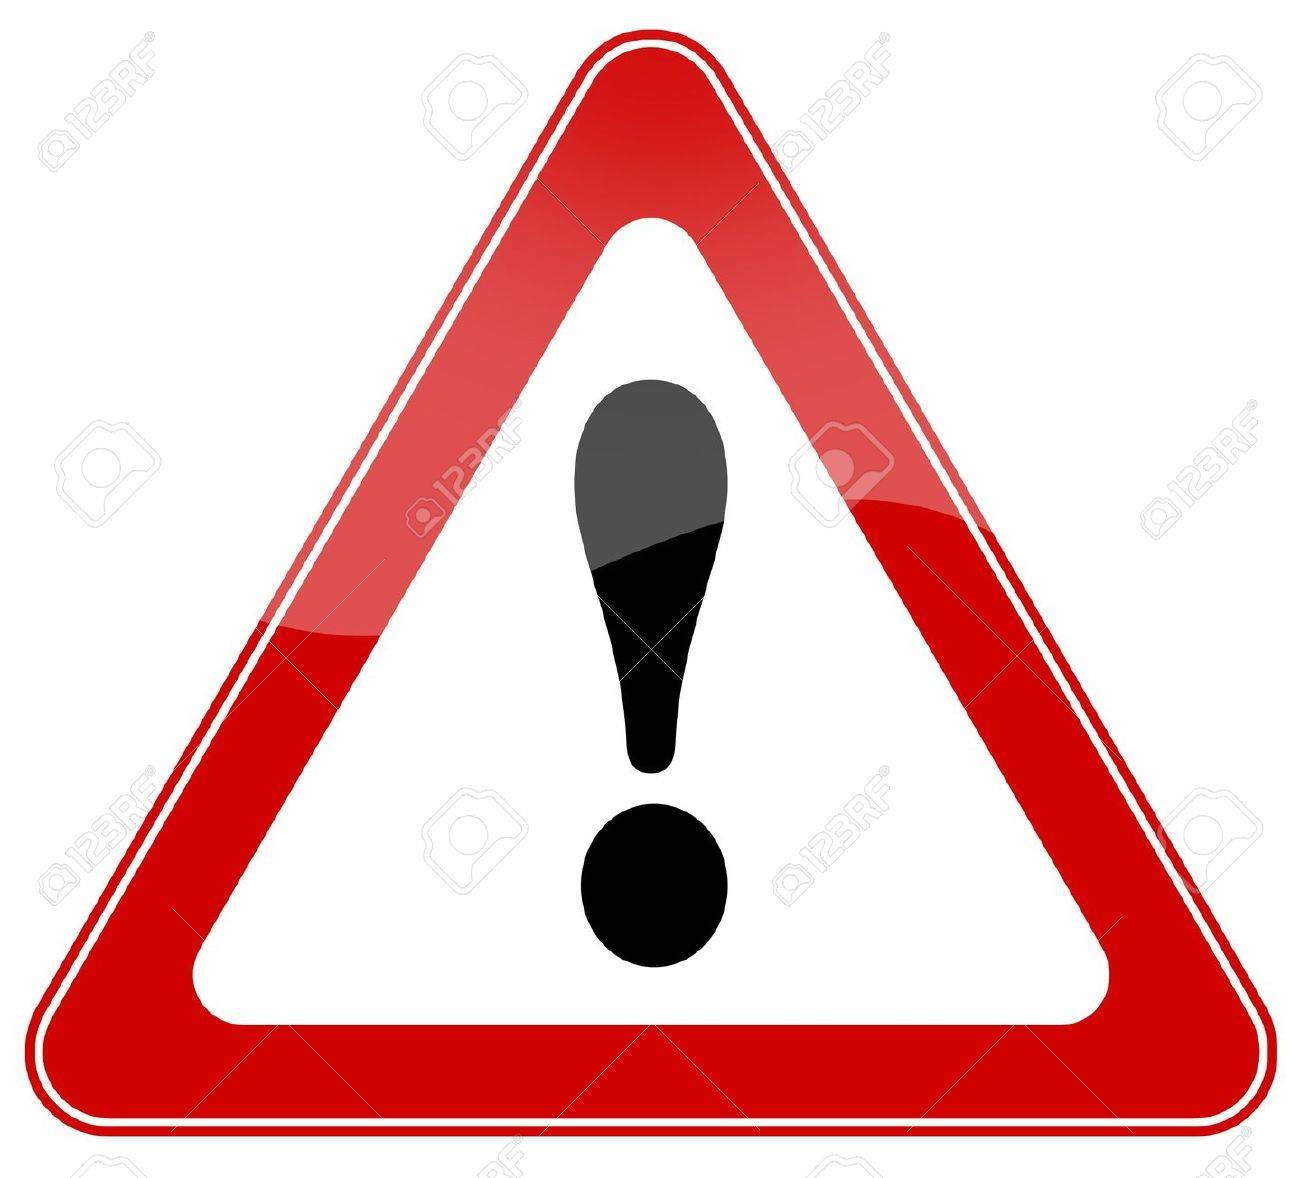 Attention sign Stock Photo - 7426684